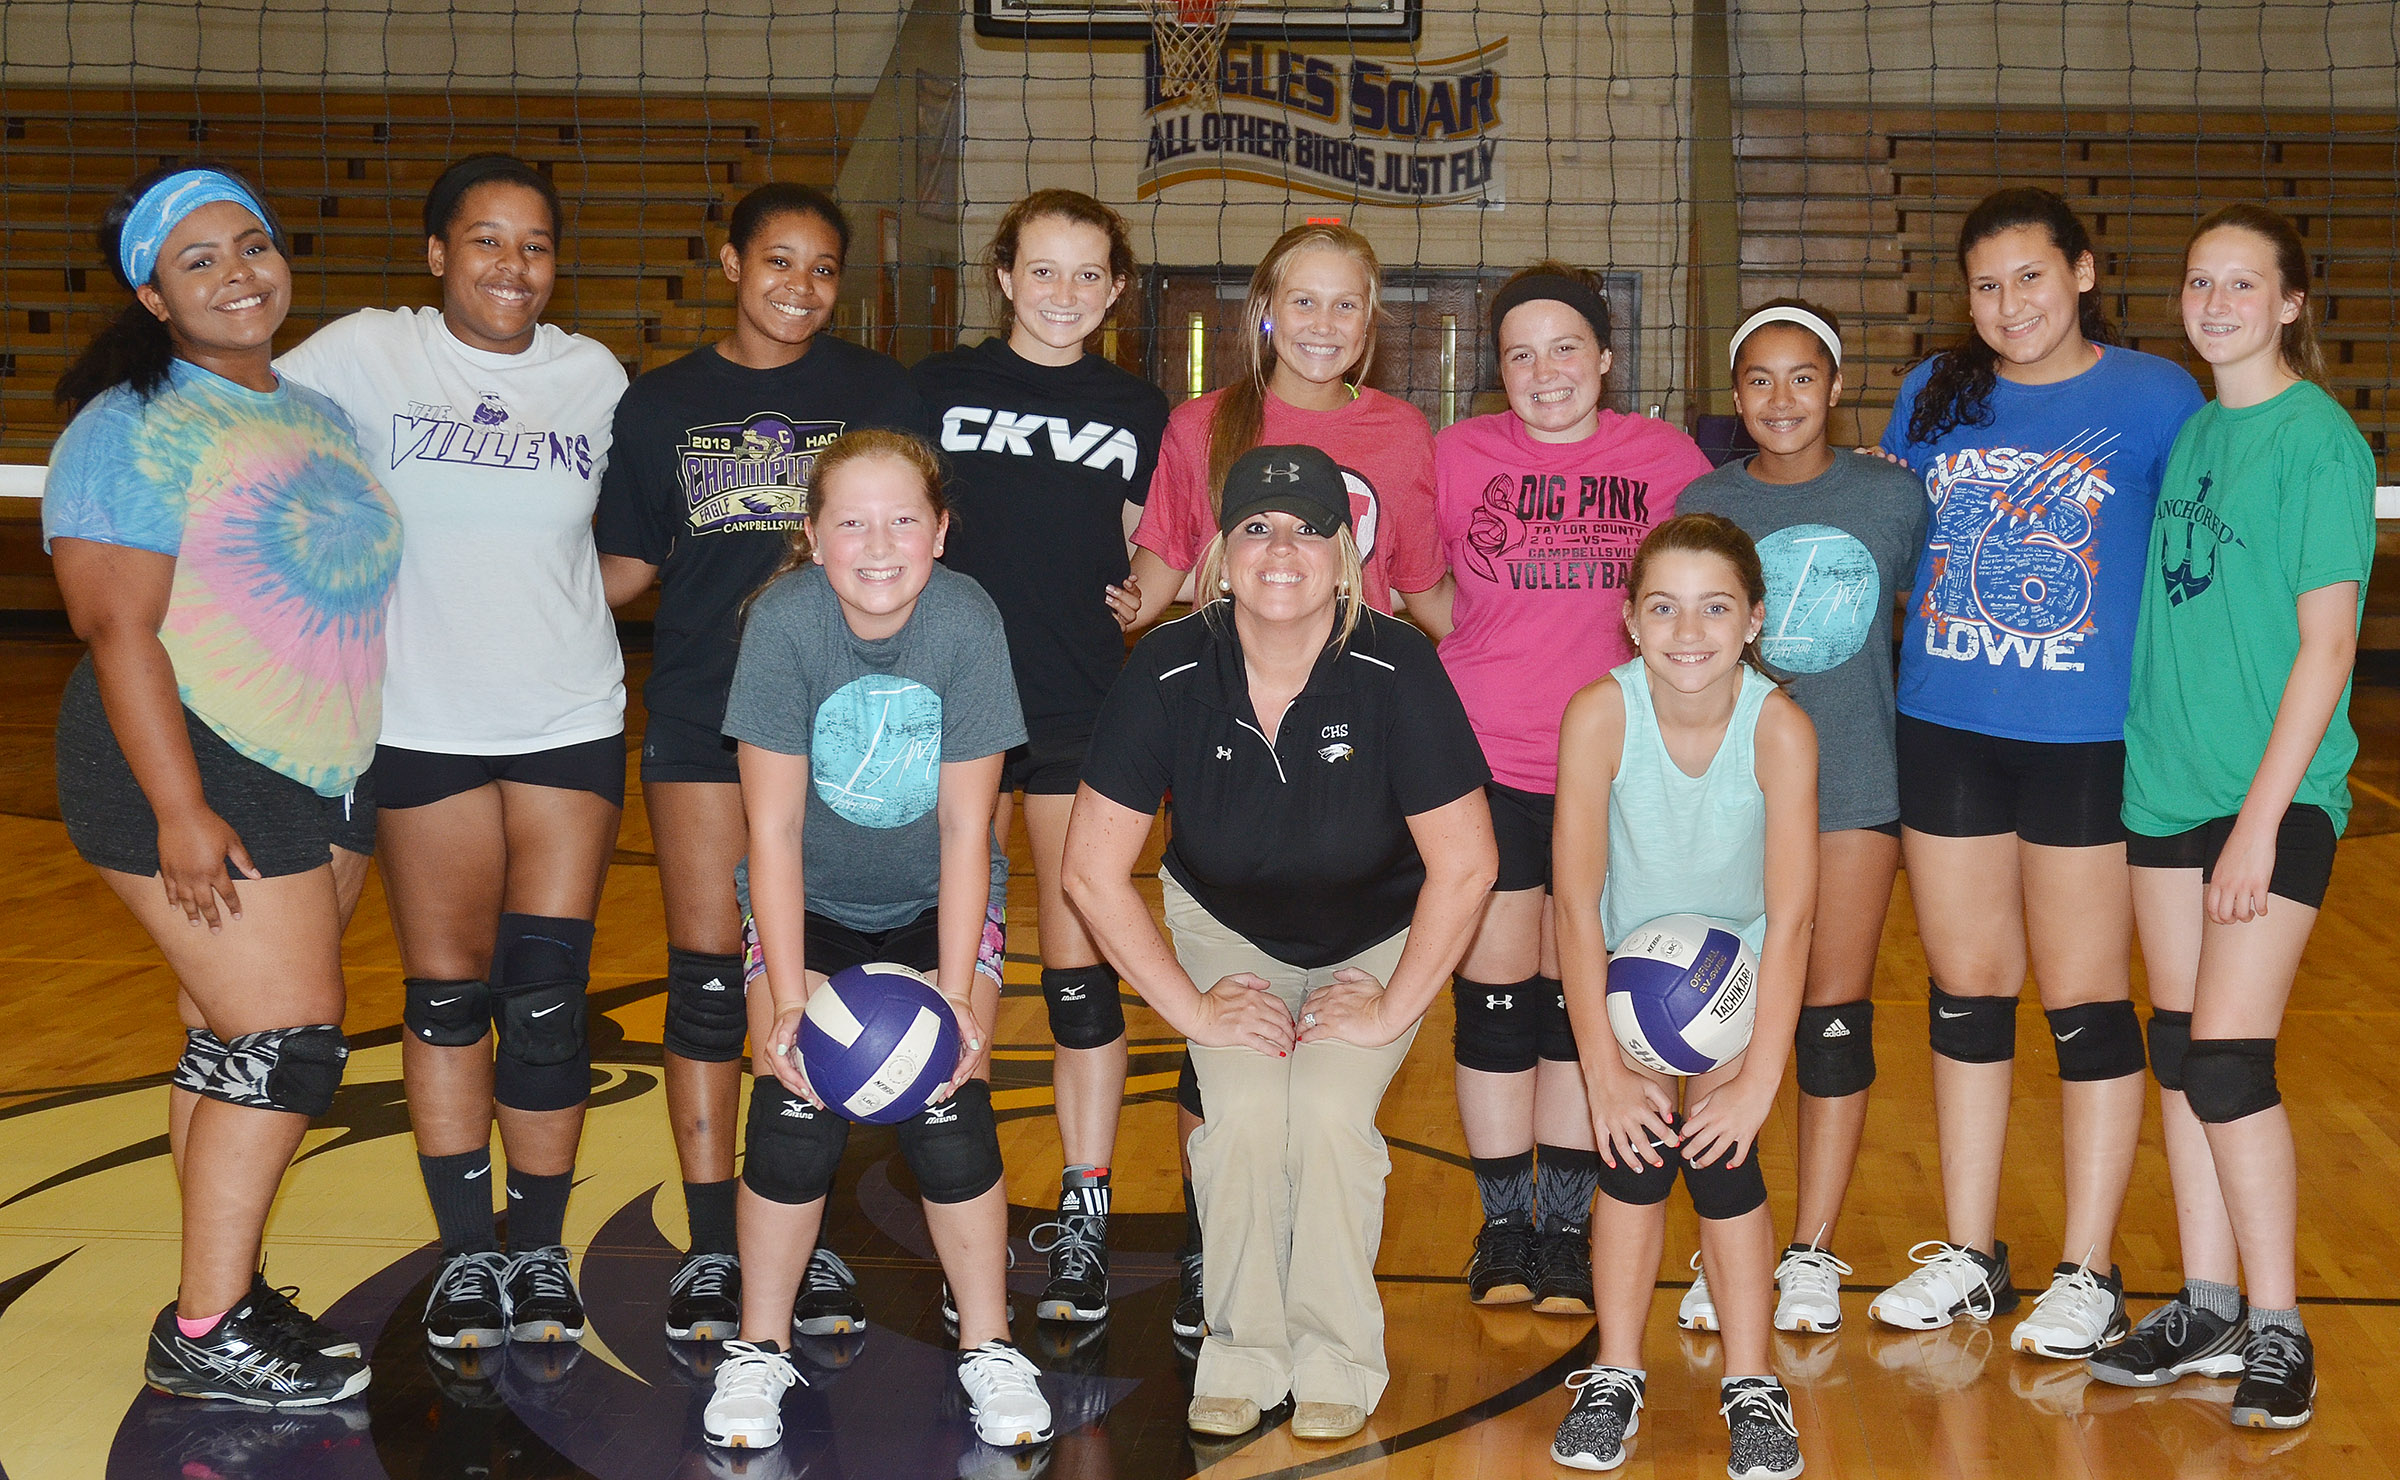 CHS Lady Eagle volleyball team hosted a camp recently, with about 10 students participating. In front are campers Ava Hughes, a sixth-grader at CMS, and Braelynn Price, who attends Kentucky Christian Academy in Campbellsville, who attended the afternoon session, with head coach Elisha Rhodes. In back are CHS volleyball players junior Natalie Caldwell, seniors Kayla Young and Vonnea Smith, juniors Salena Ritchie and Tatem Wiseman, senior Caitlin Bright and freshmen Laci Hodgens, Anna Clara Moura and Zoie Sidebottom.